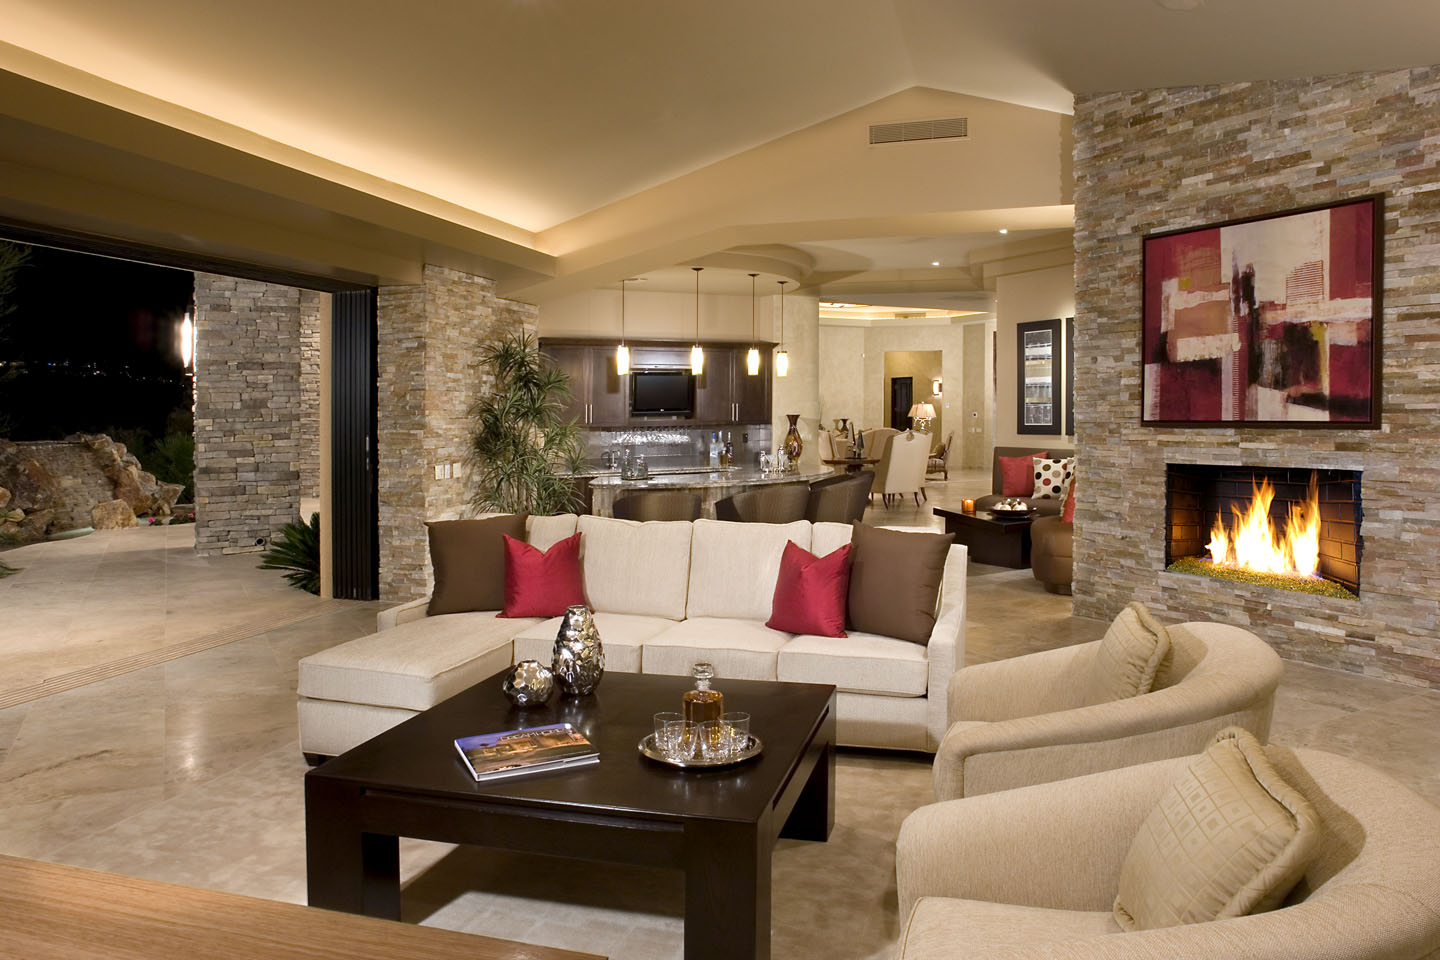 Rock your home with stone interior accents - Housing interiors ...